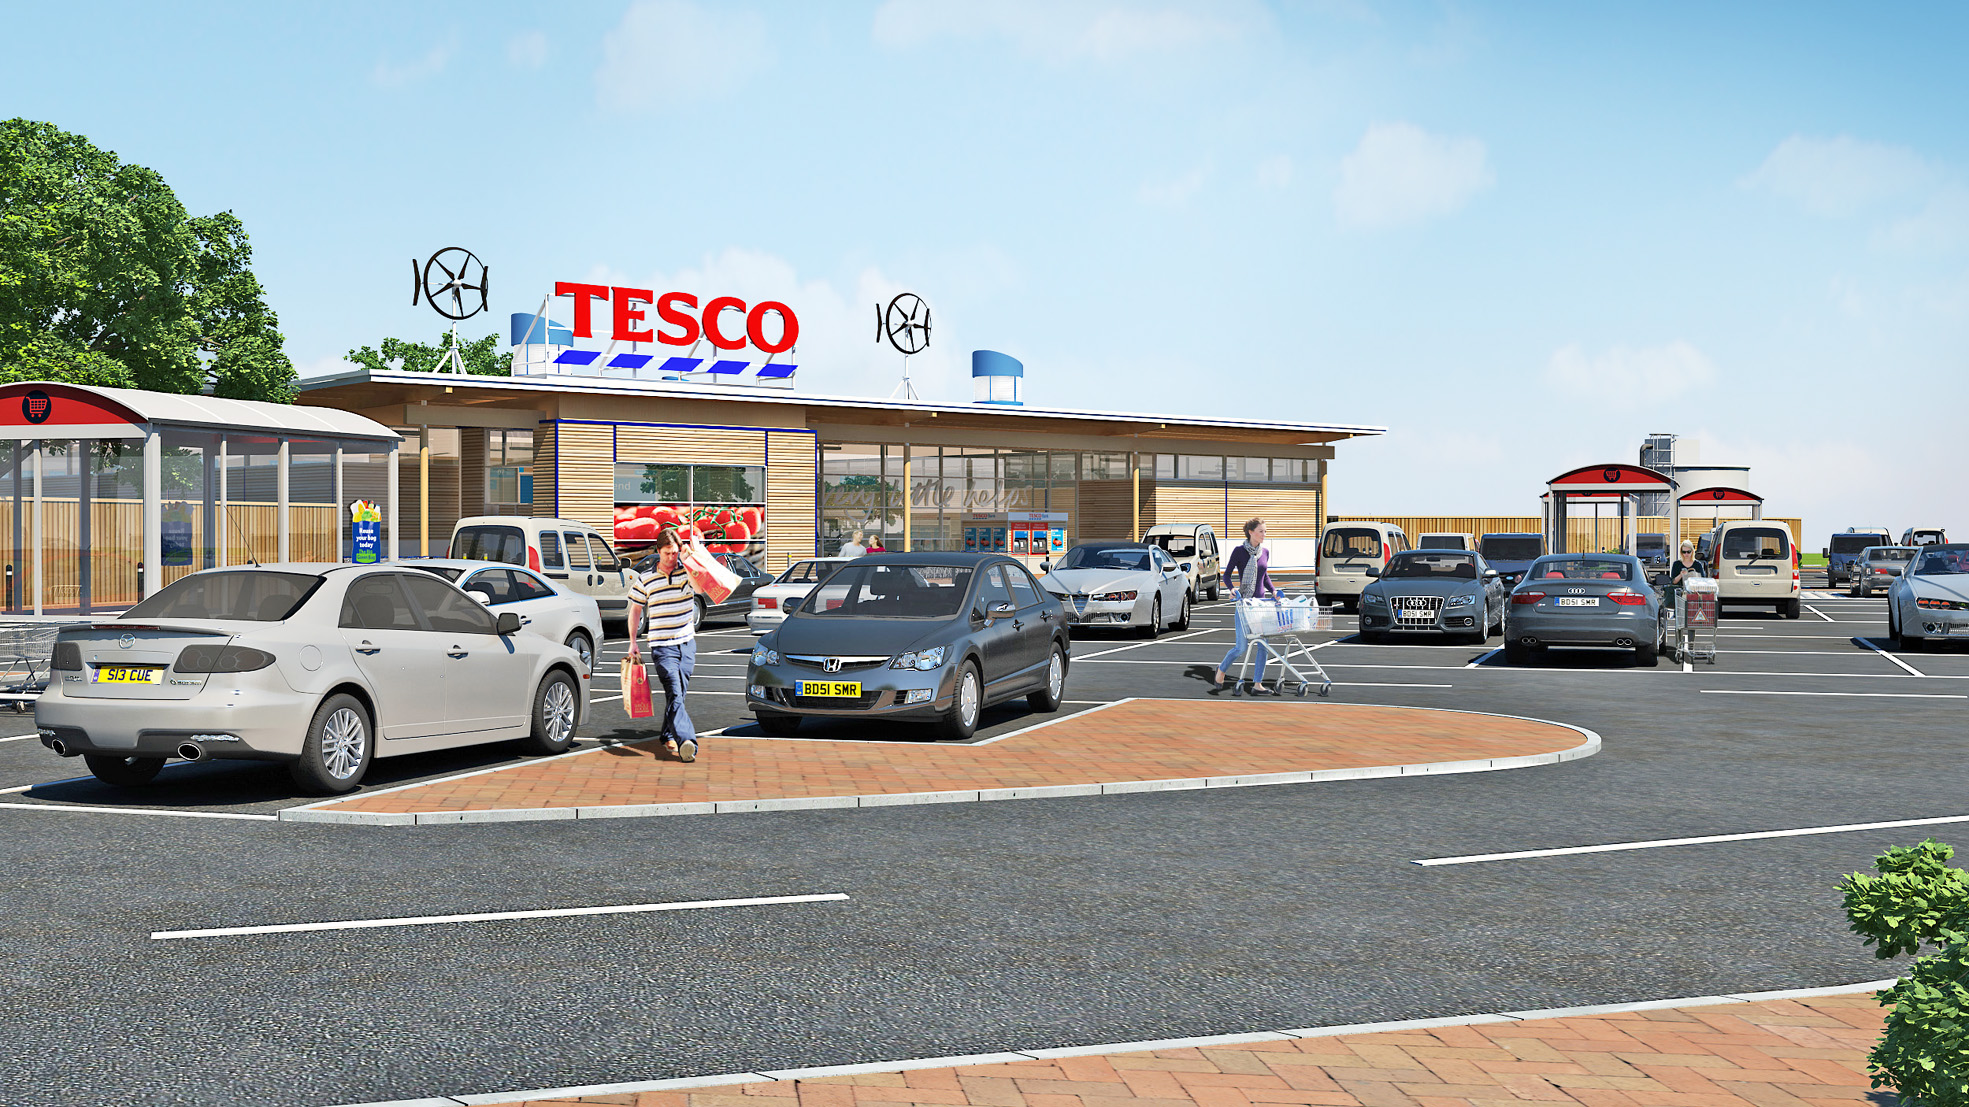 An artist's impression of the proposed Tesco in Silsden